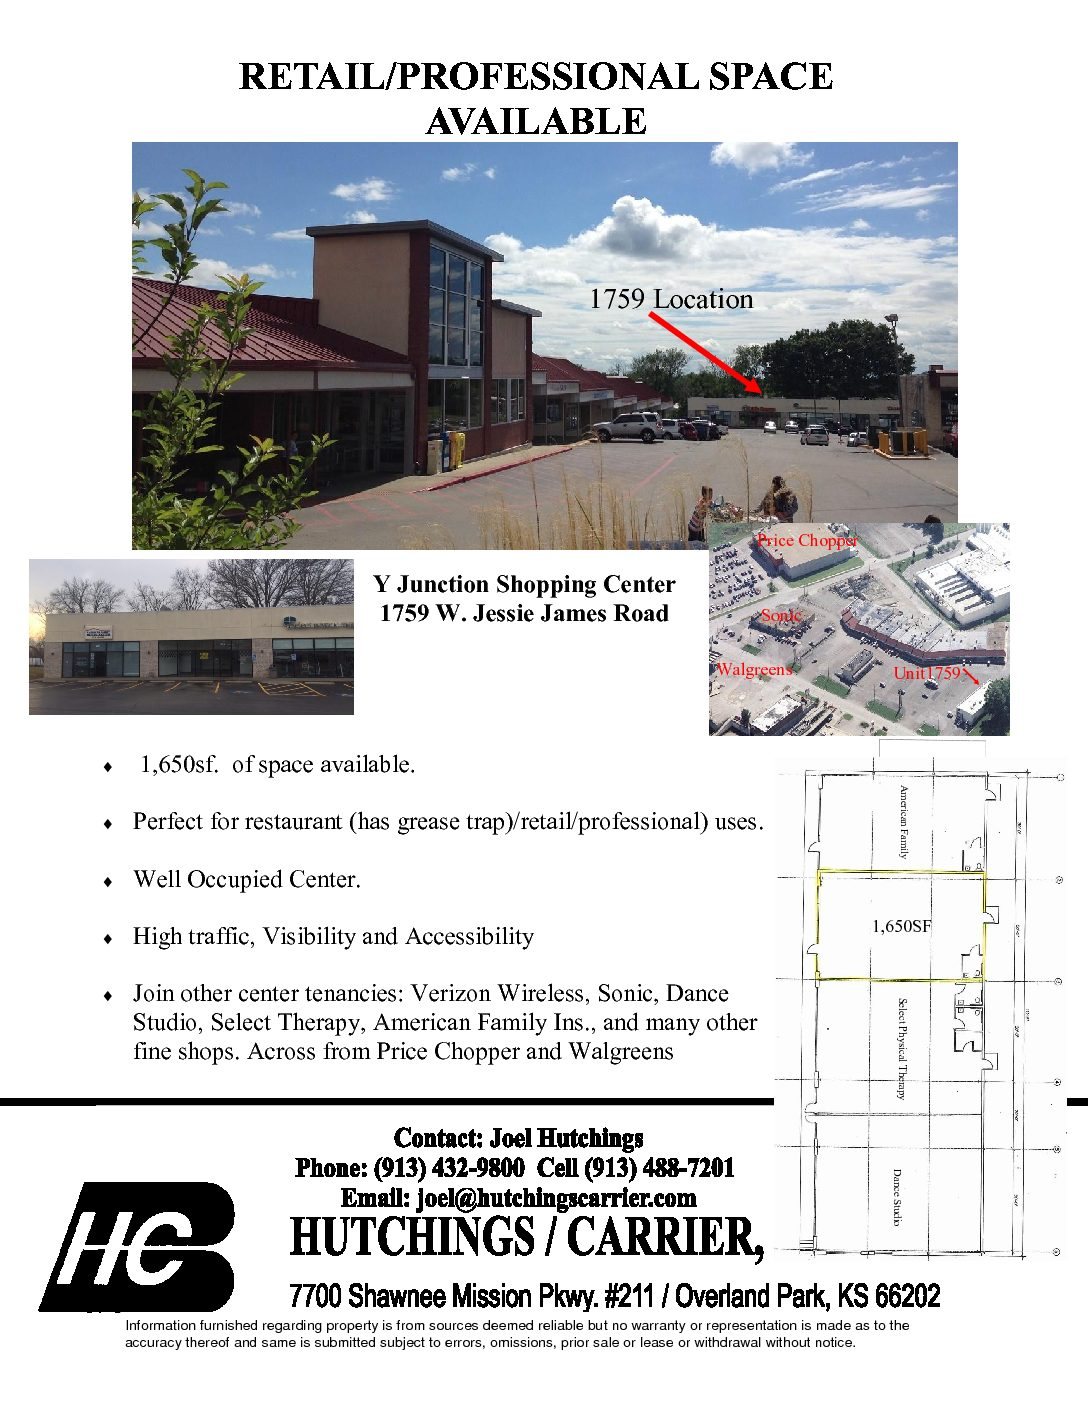 1759 W  Jessie James Road – Hutchings/Carrier Inc